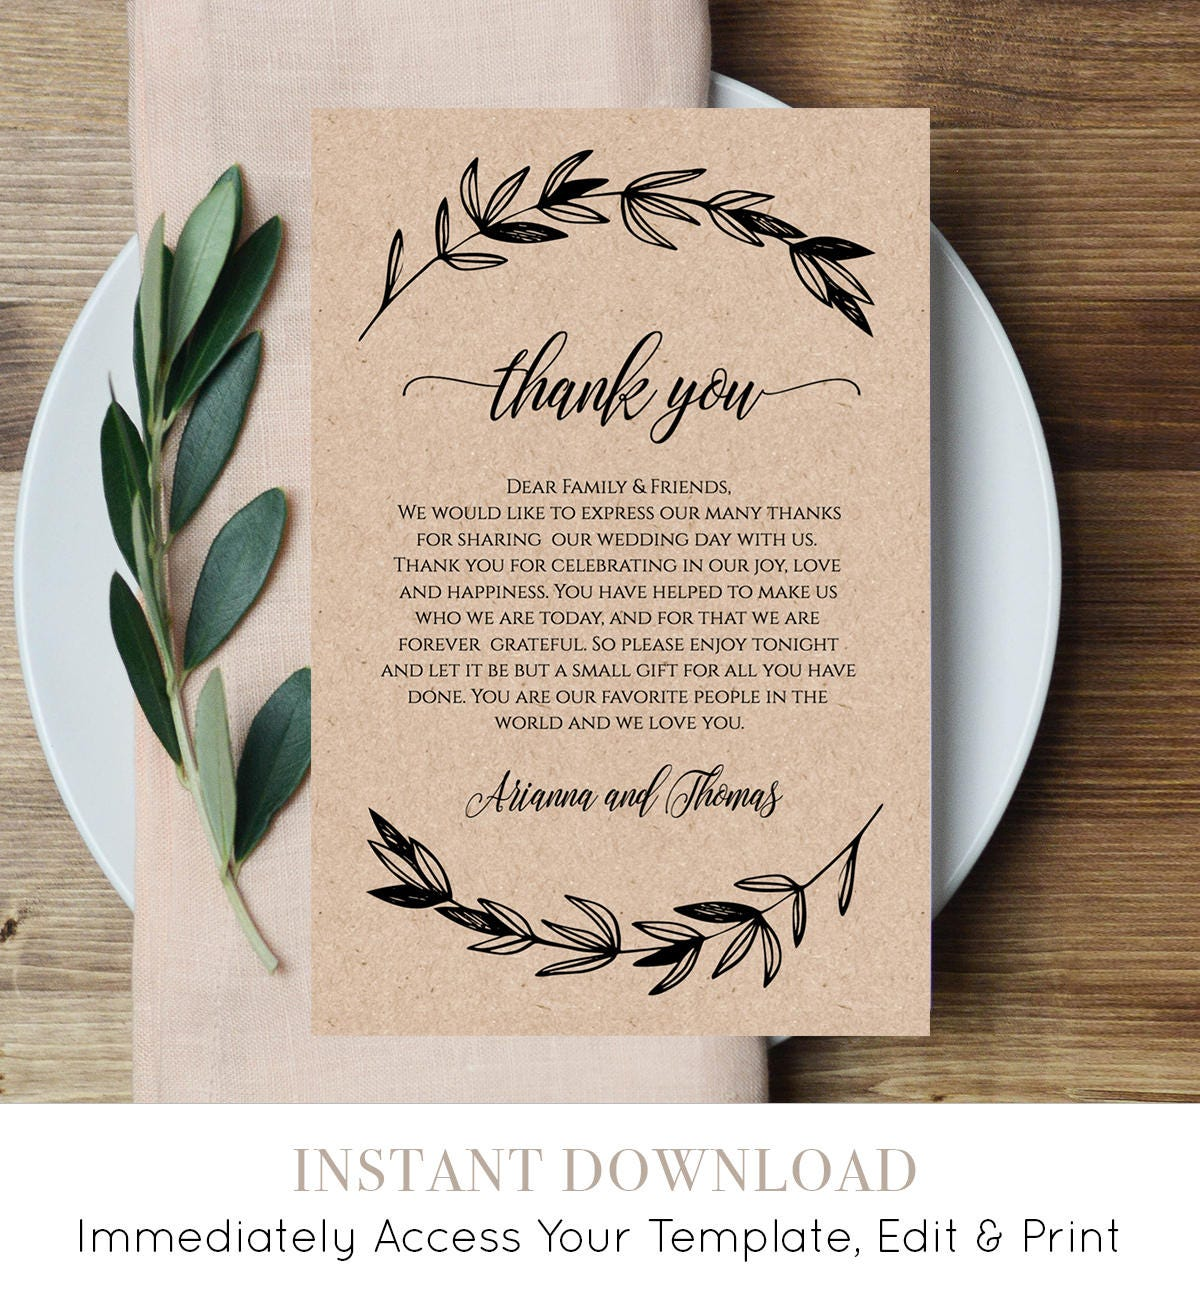 Thank You Letter For Wedding Invitation: Printable Wedding Thank You Letter, Reception Thank You